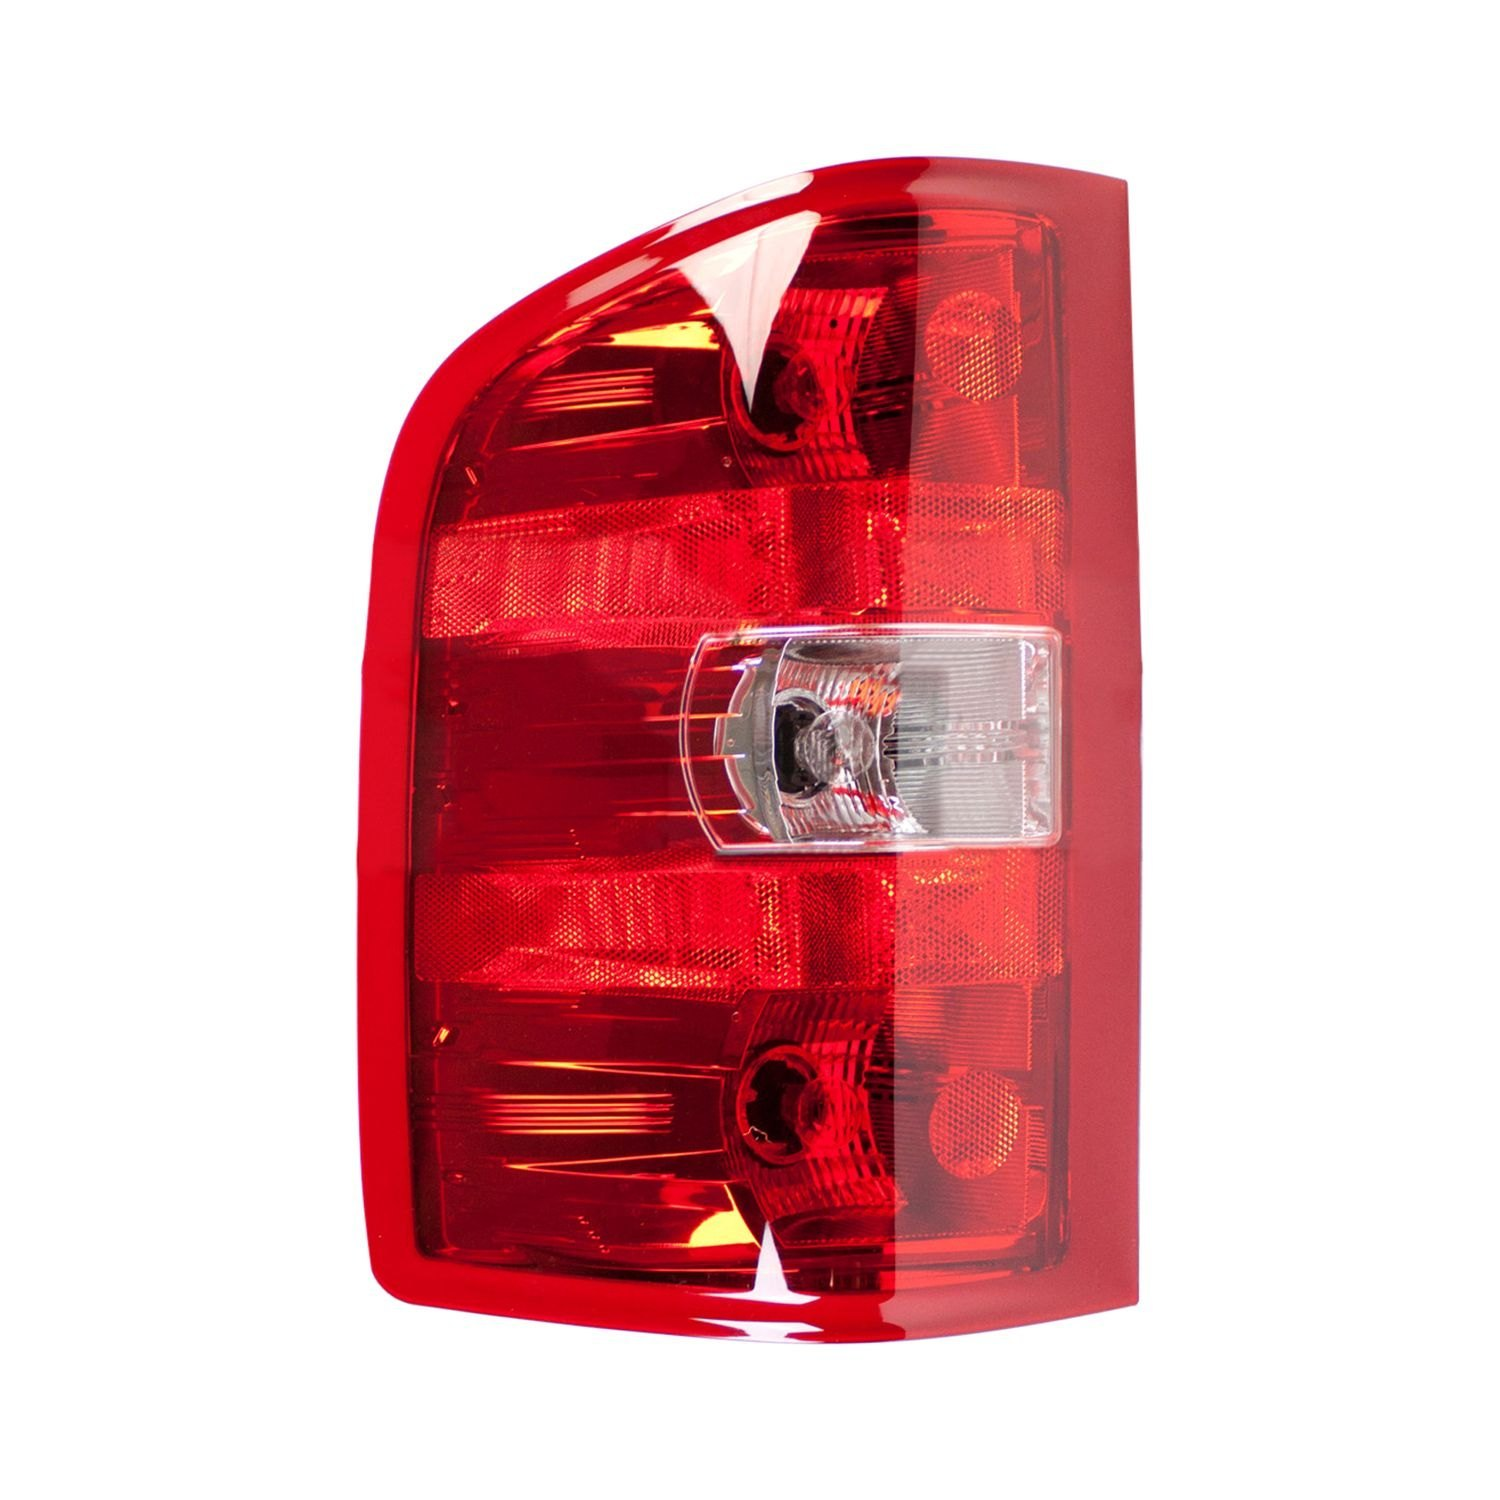 tyc chevy silverado 2009 replacement tail light. Black Bedroom Furniture Sets. Home Design Ideas